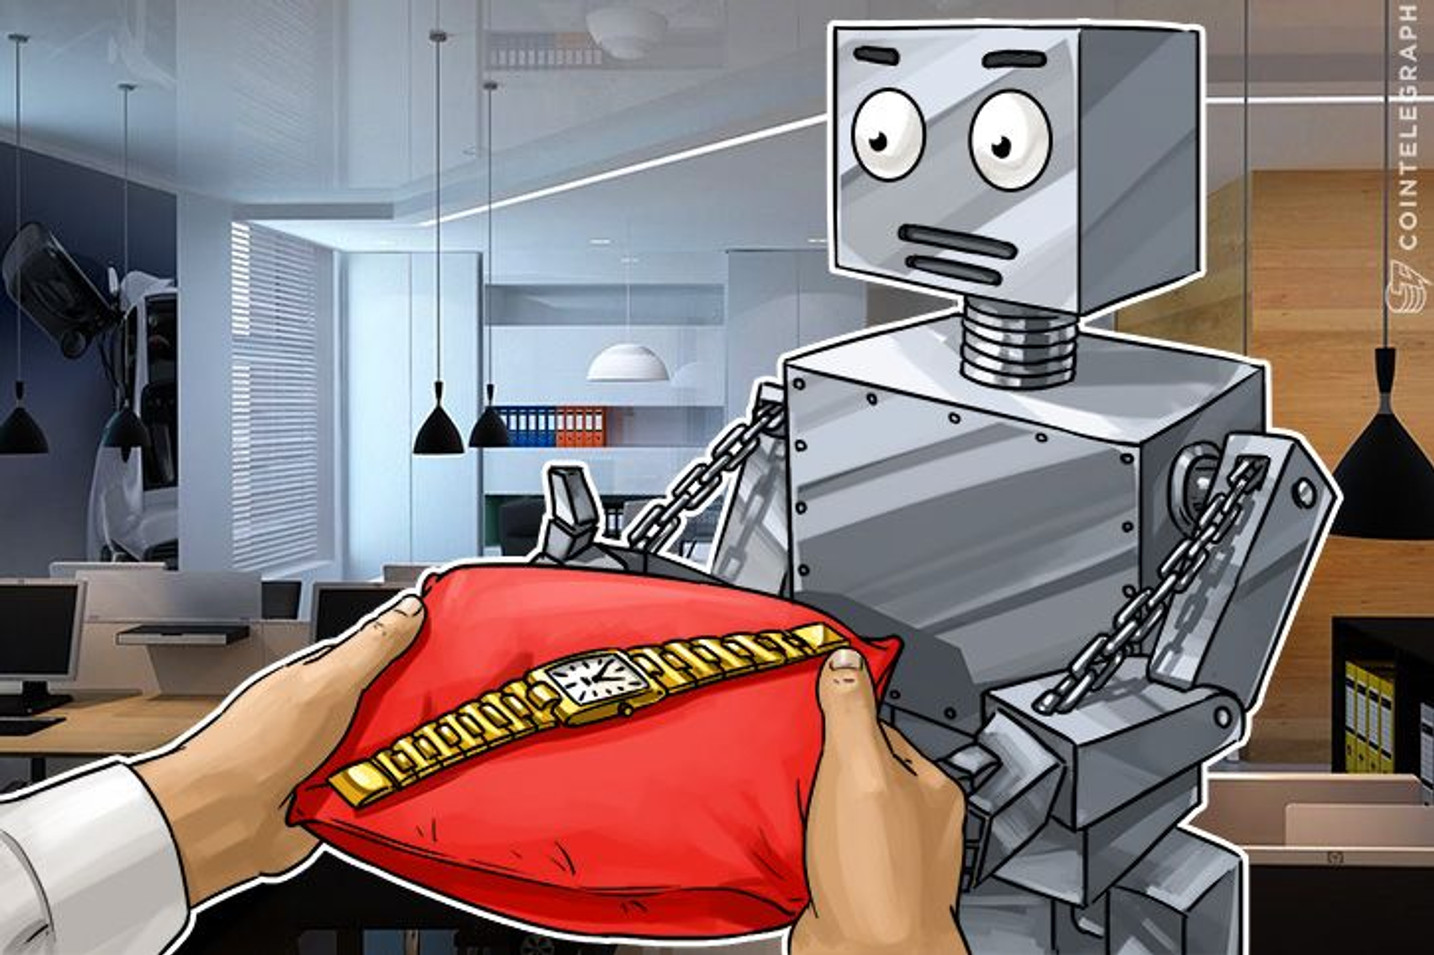 New Application for Blockchain Implemented for SQL Developers, Users